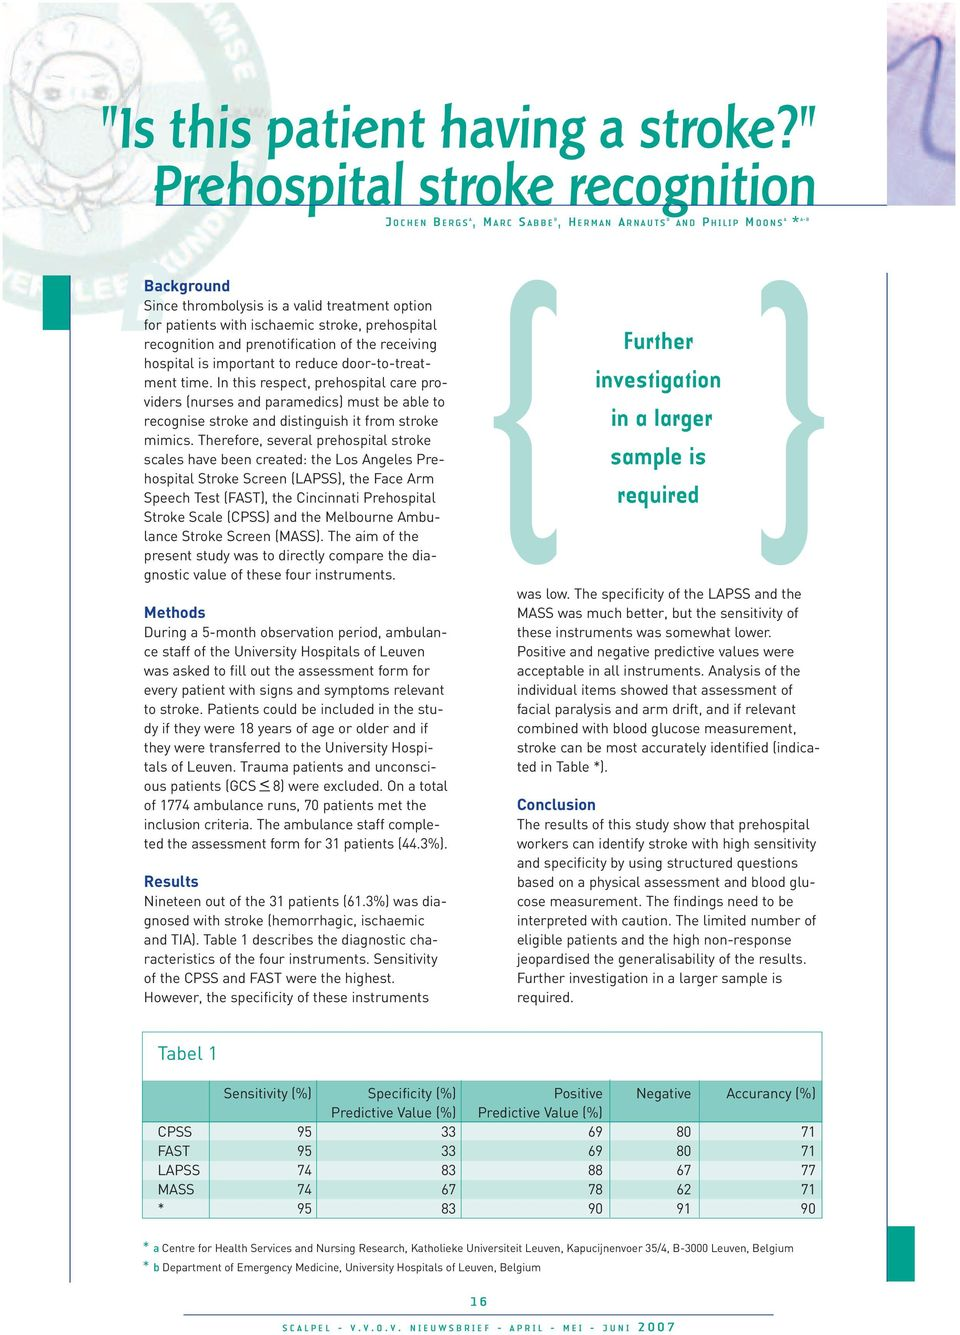 prehospital recognition and prenotification of the receiving hospital is important to reduce door-to-treatment time.